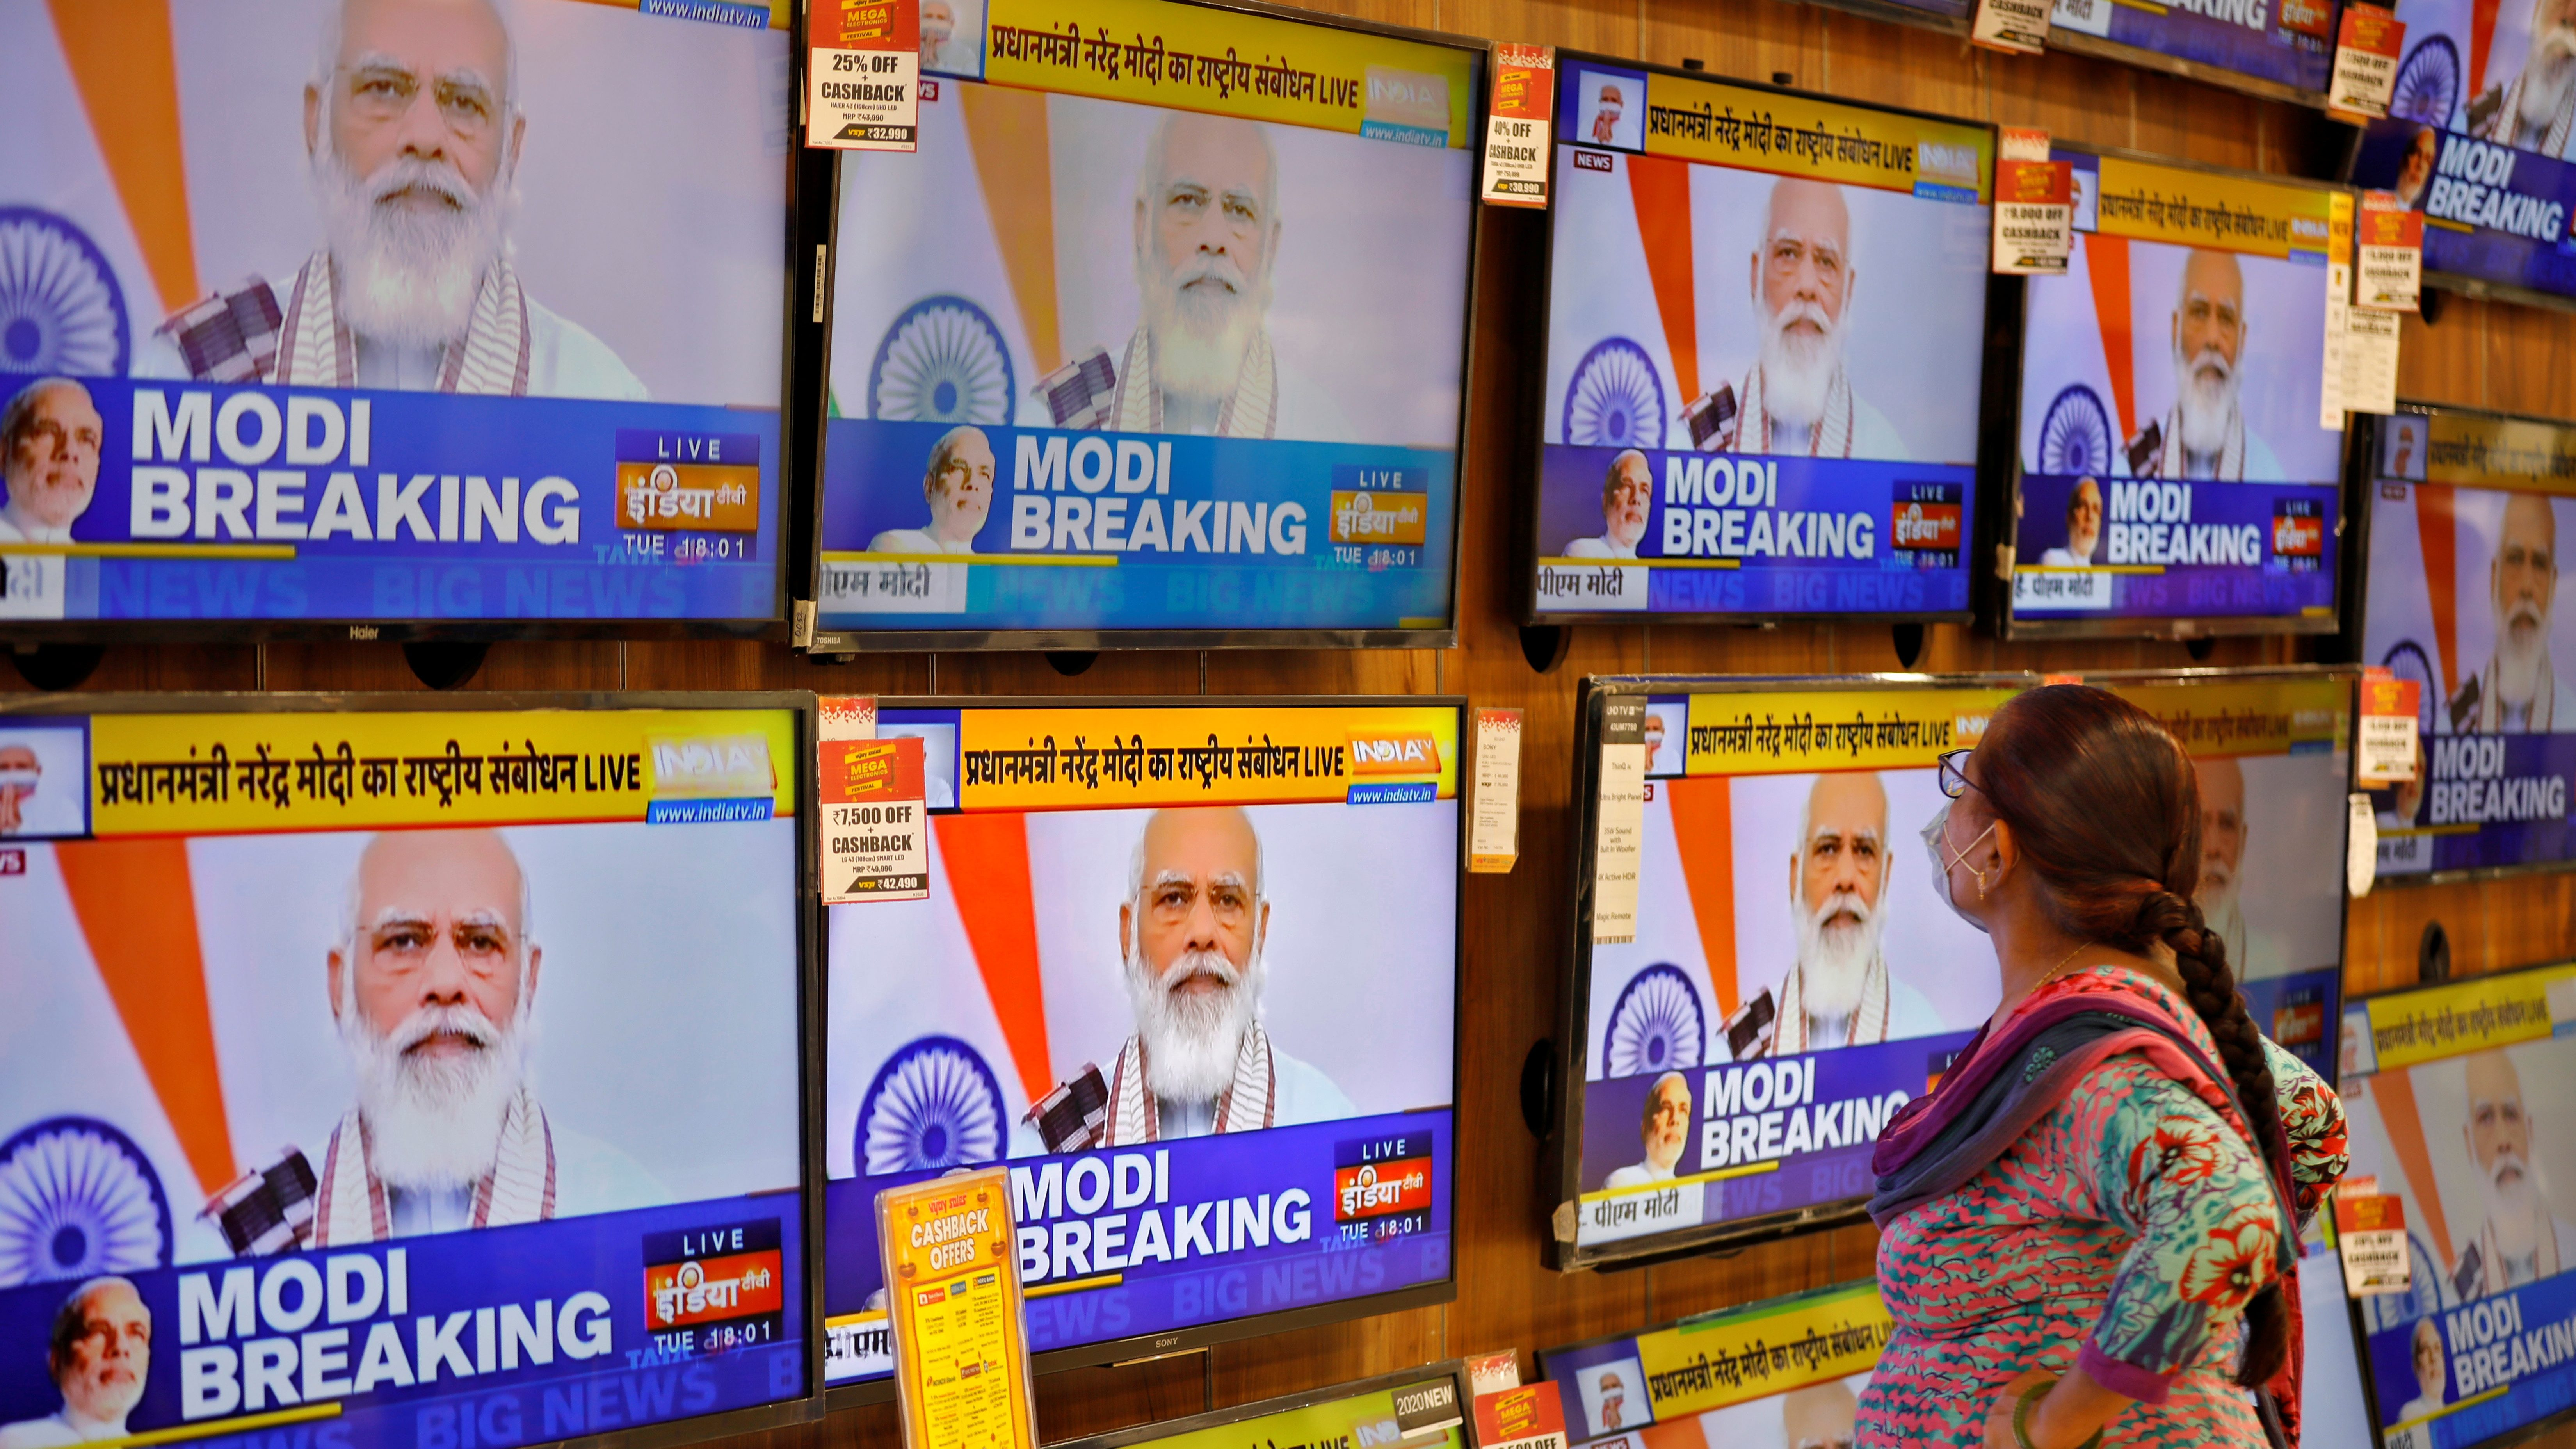 A woman wearing a protective mask watches Indian PM Modi on TV screens inside a showroom in Ahmedabad